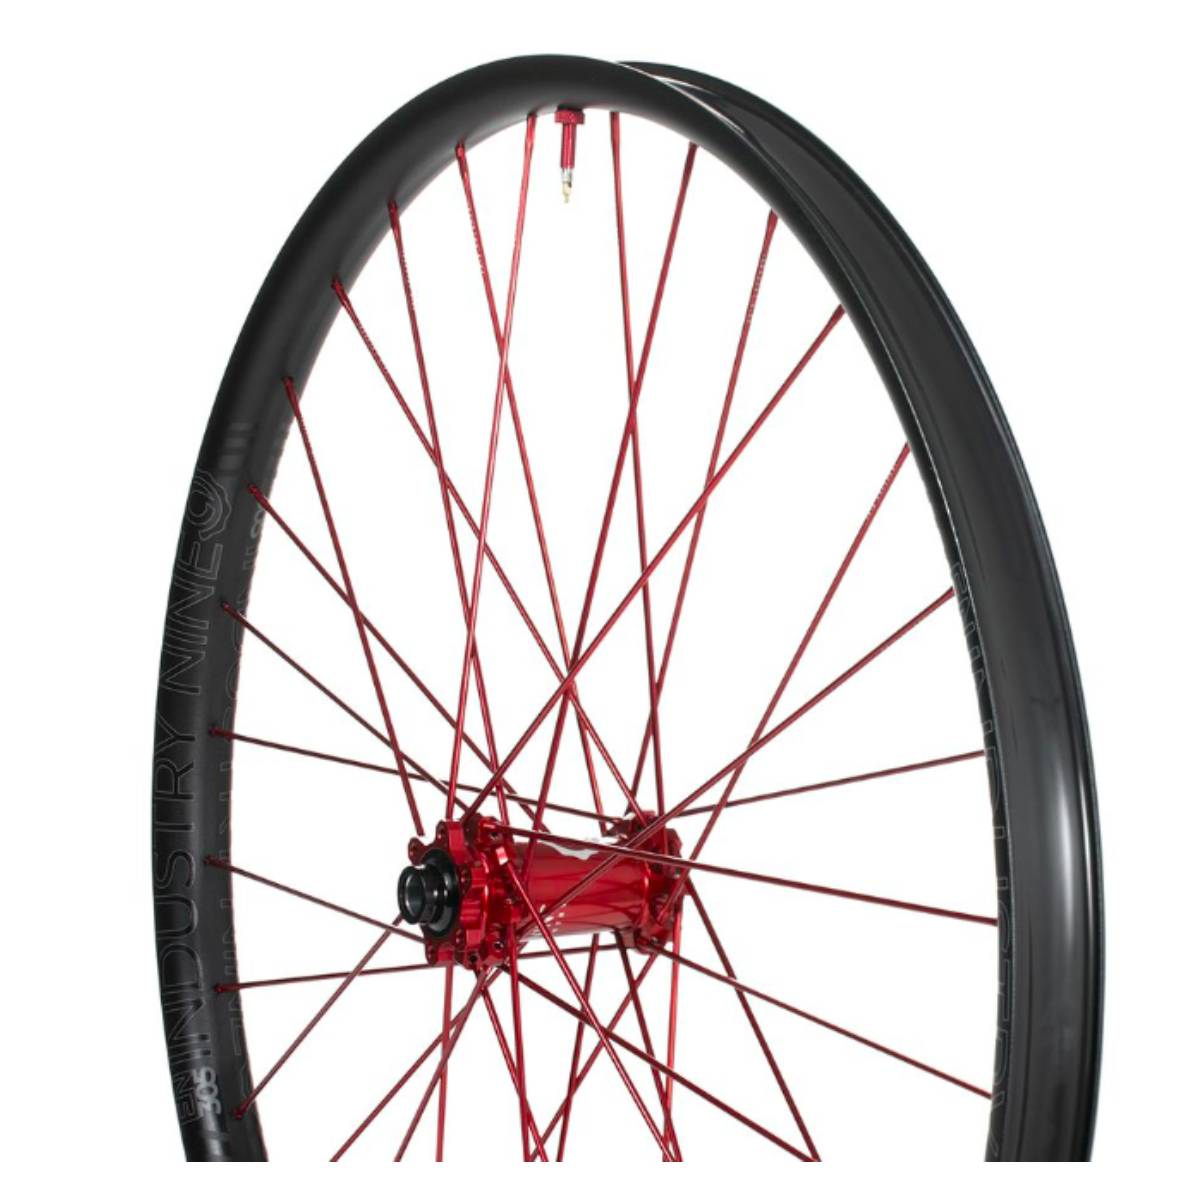 ROUES INDUSTRY 9 HYDRA ENDURO 315 CARBON 29 15X110/12X157  32 RAYONS 6 BOLTS MICROSPLINE CUSTOM ROUGE